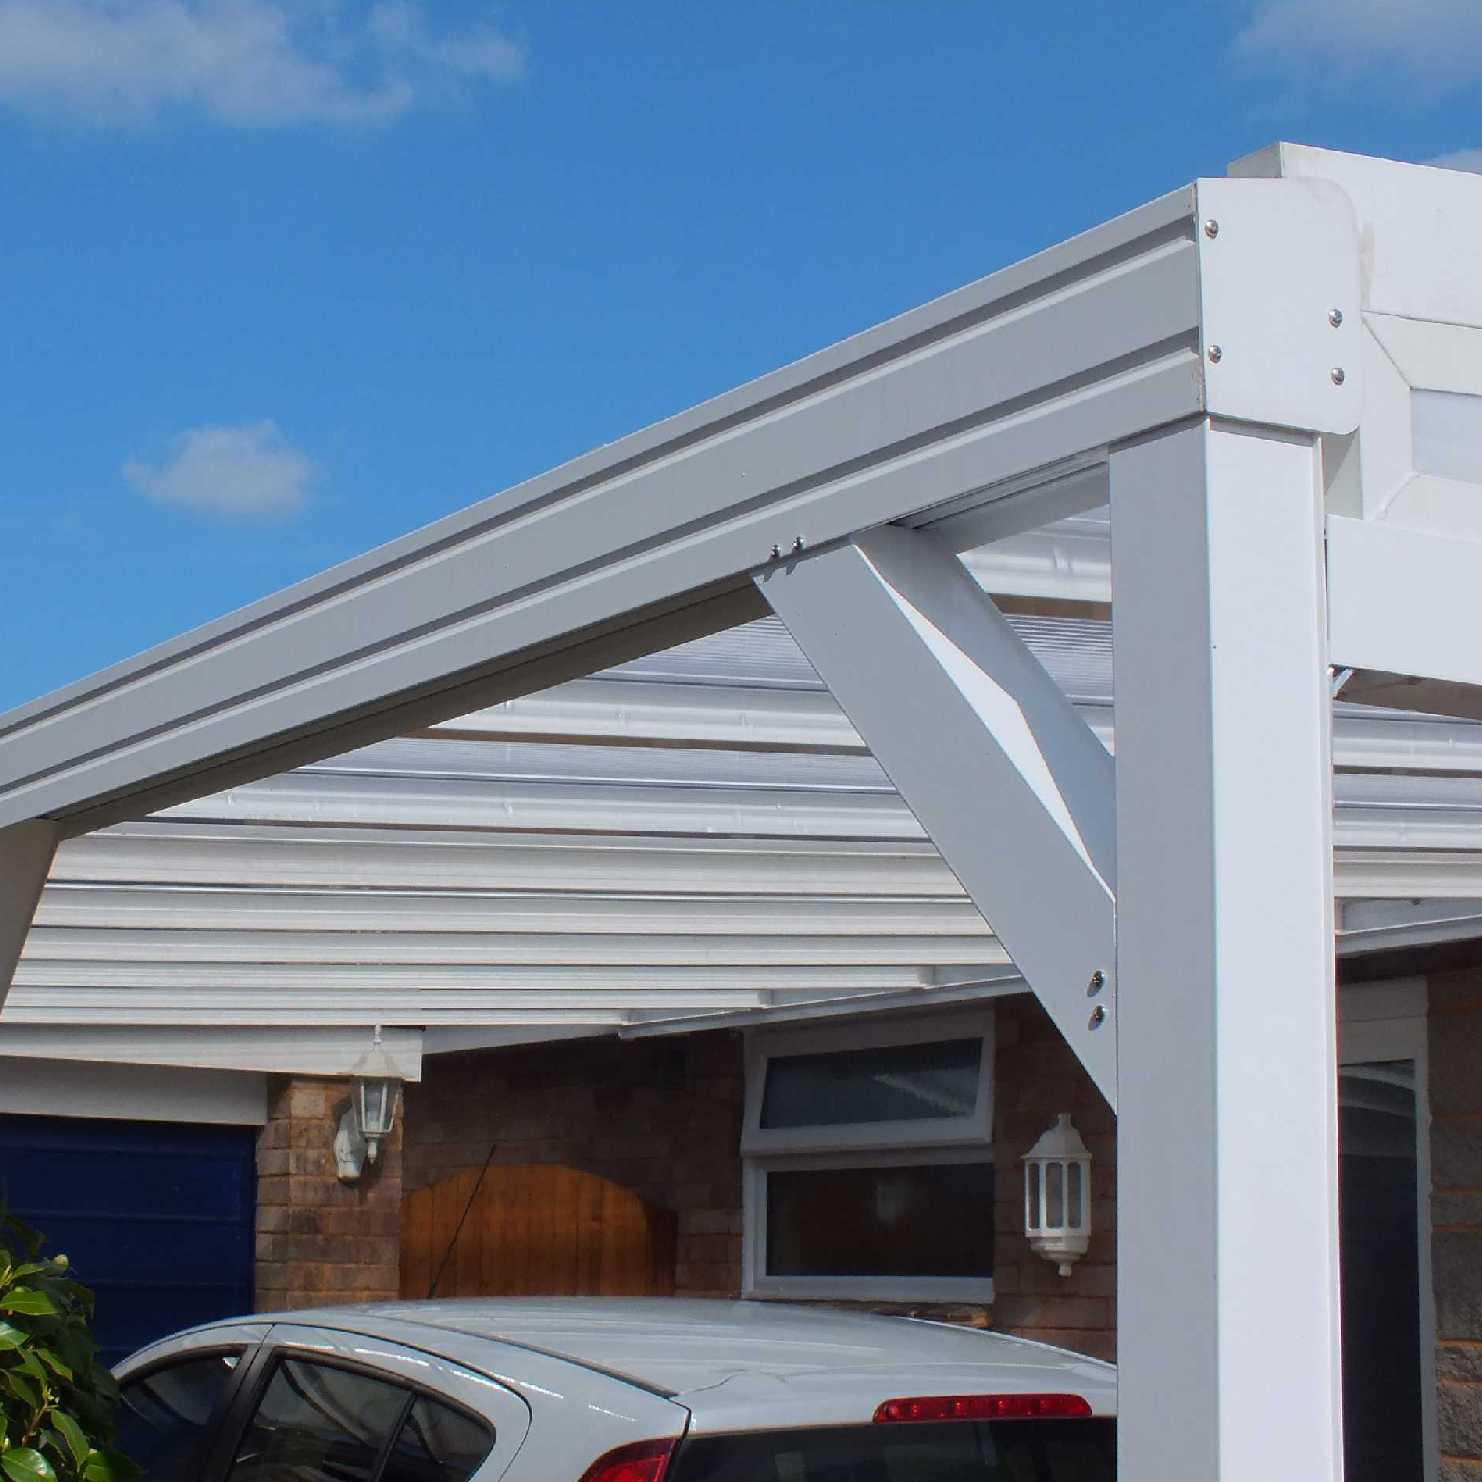 Great deals on Omega Smart Lean-To Canopy with 16mm Polycarbonate Glazing - 8.4m (W) x 2.5m (P), (4) Supporting Posts